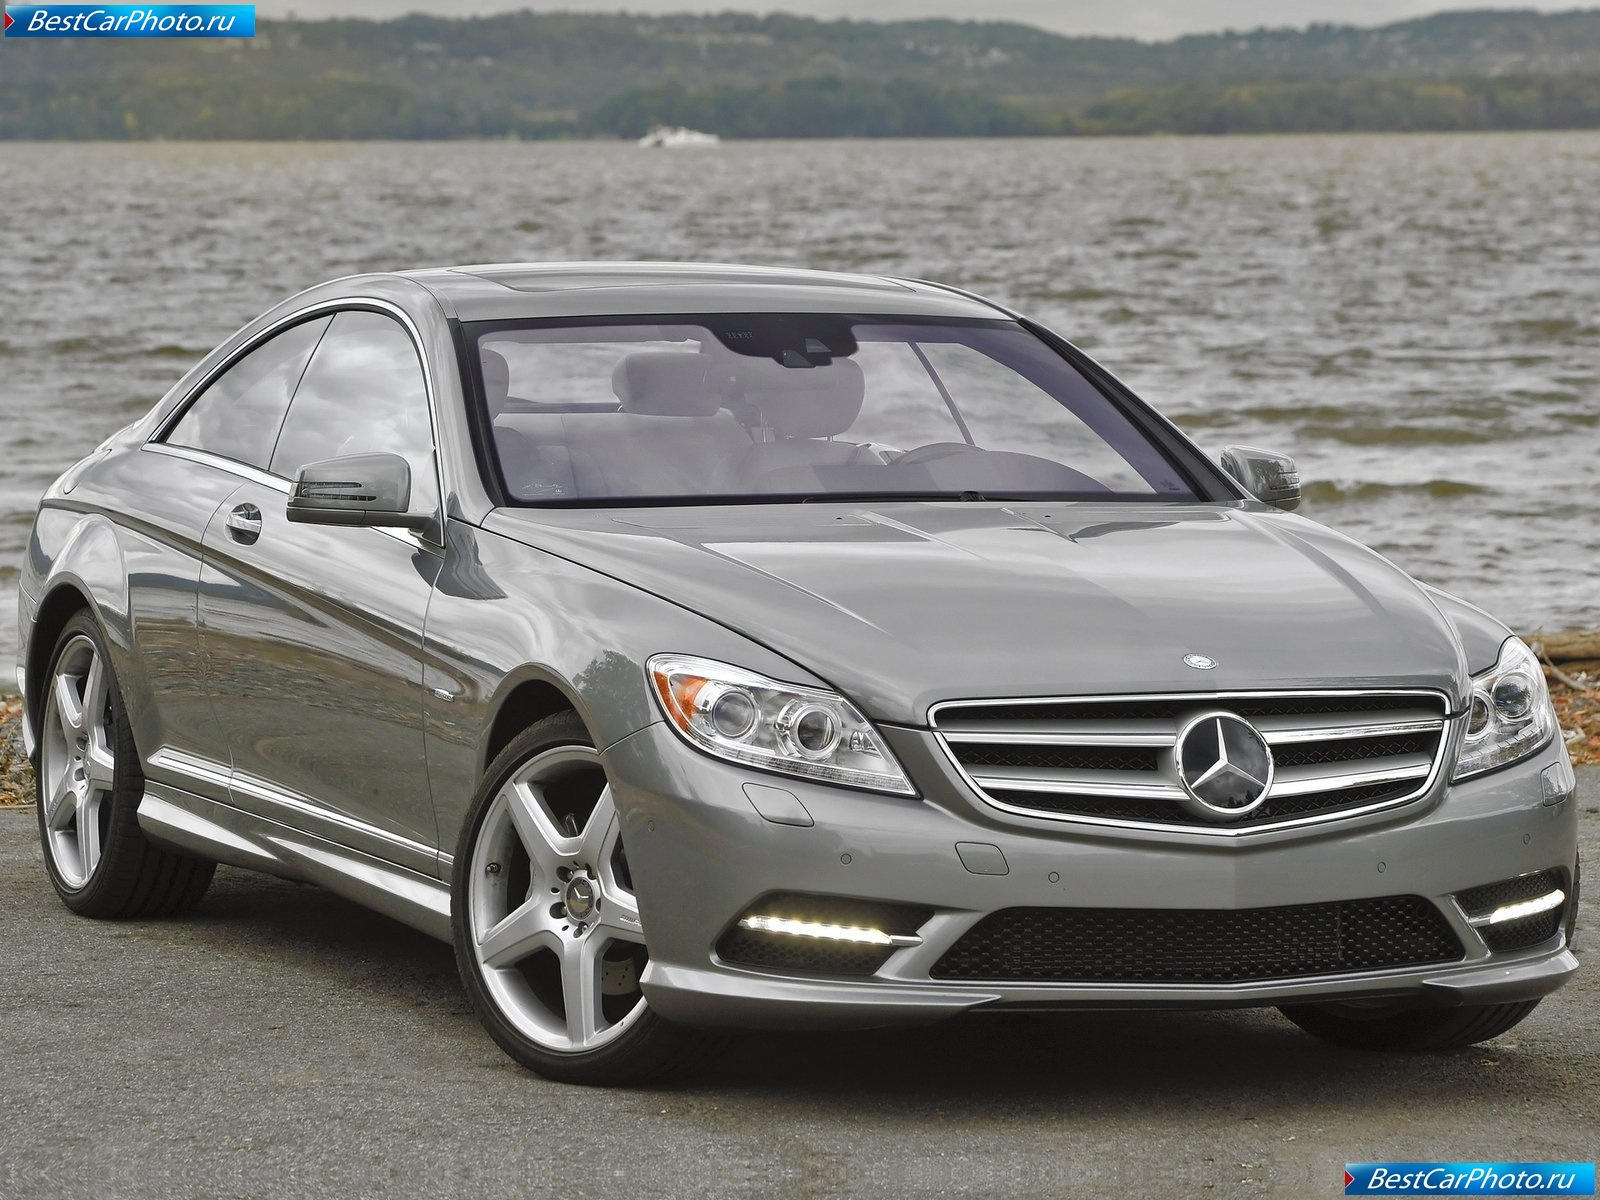 2007 Mercedes Benz CL Class AMG styling photo - 3